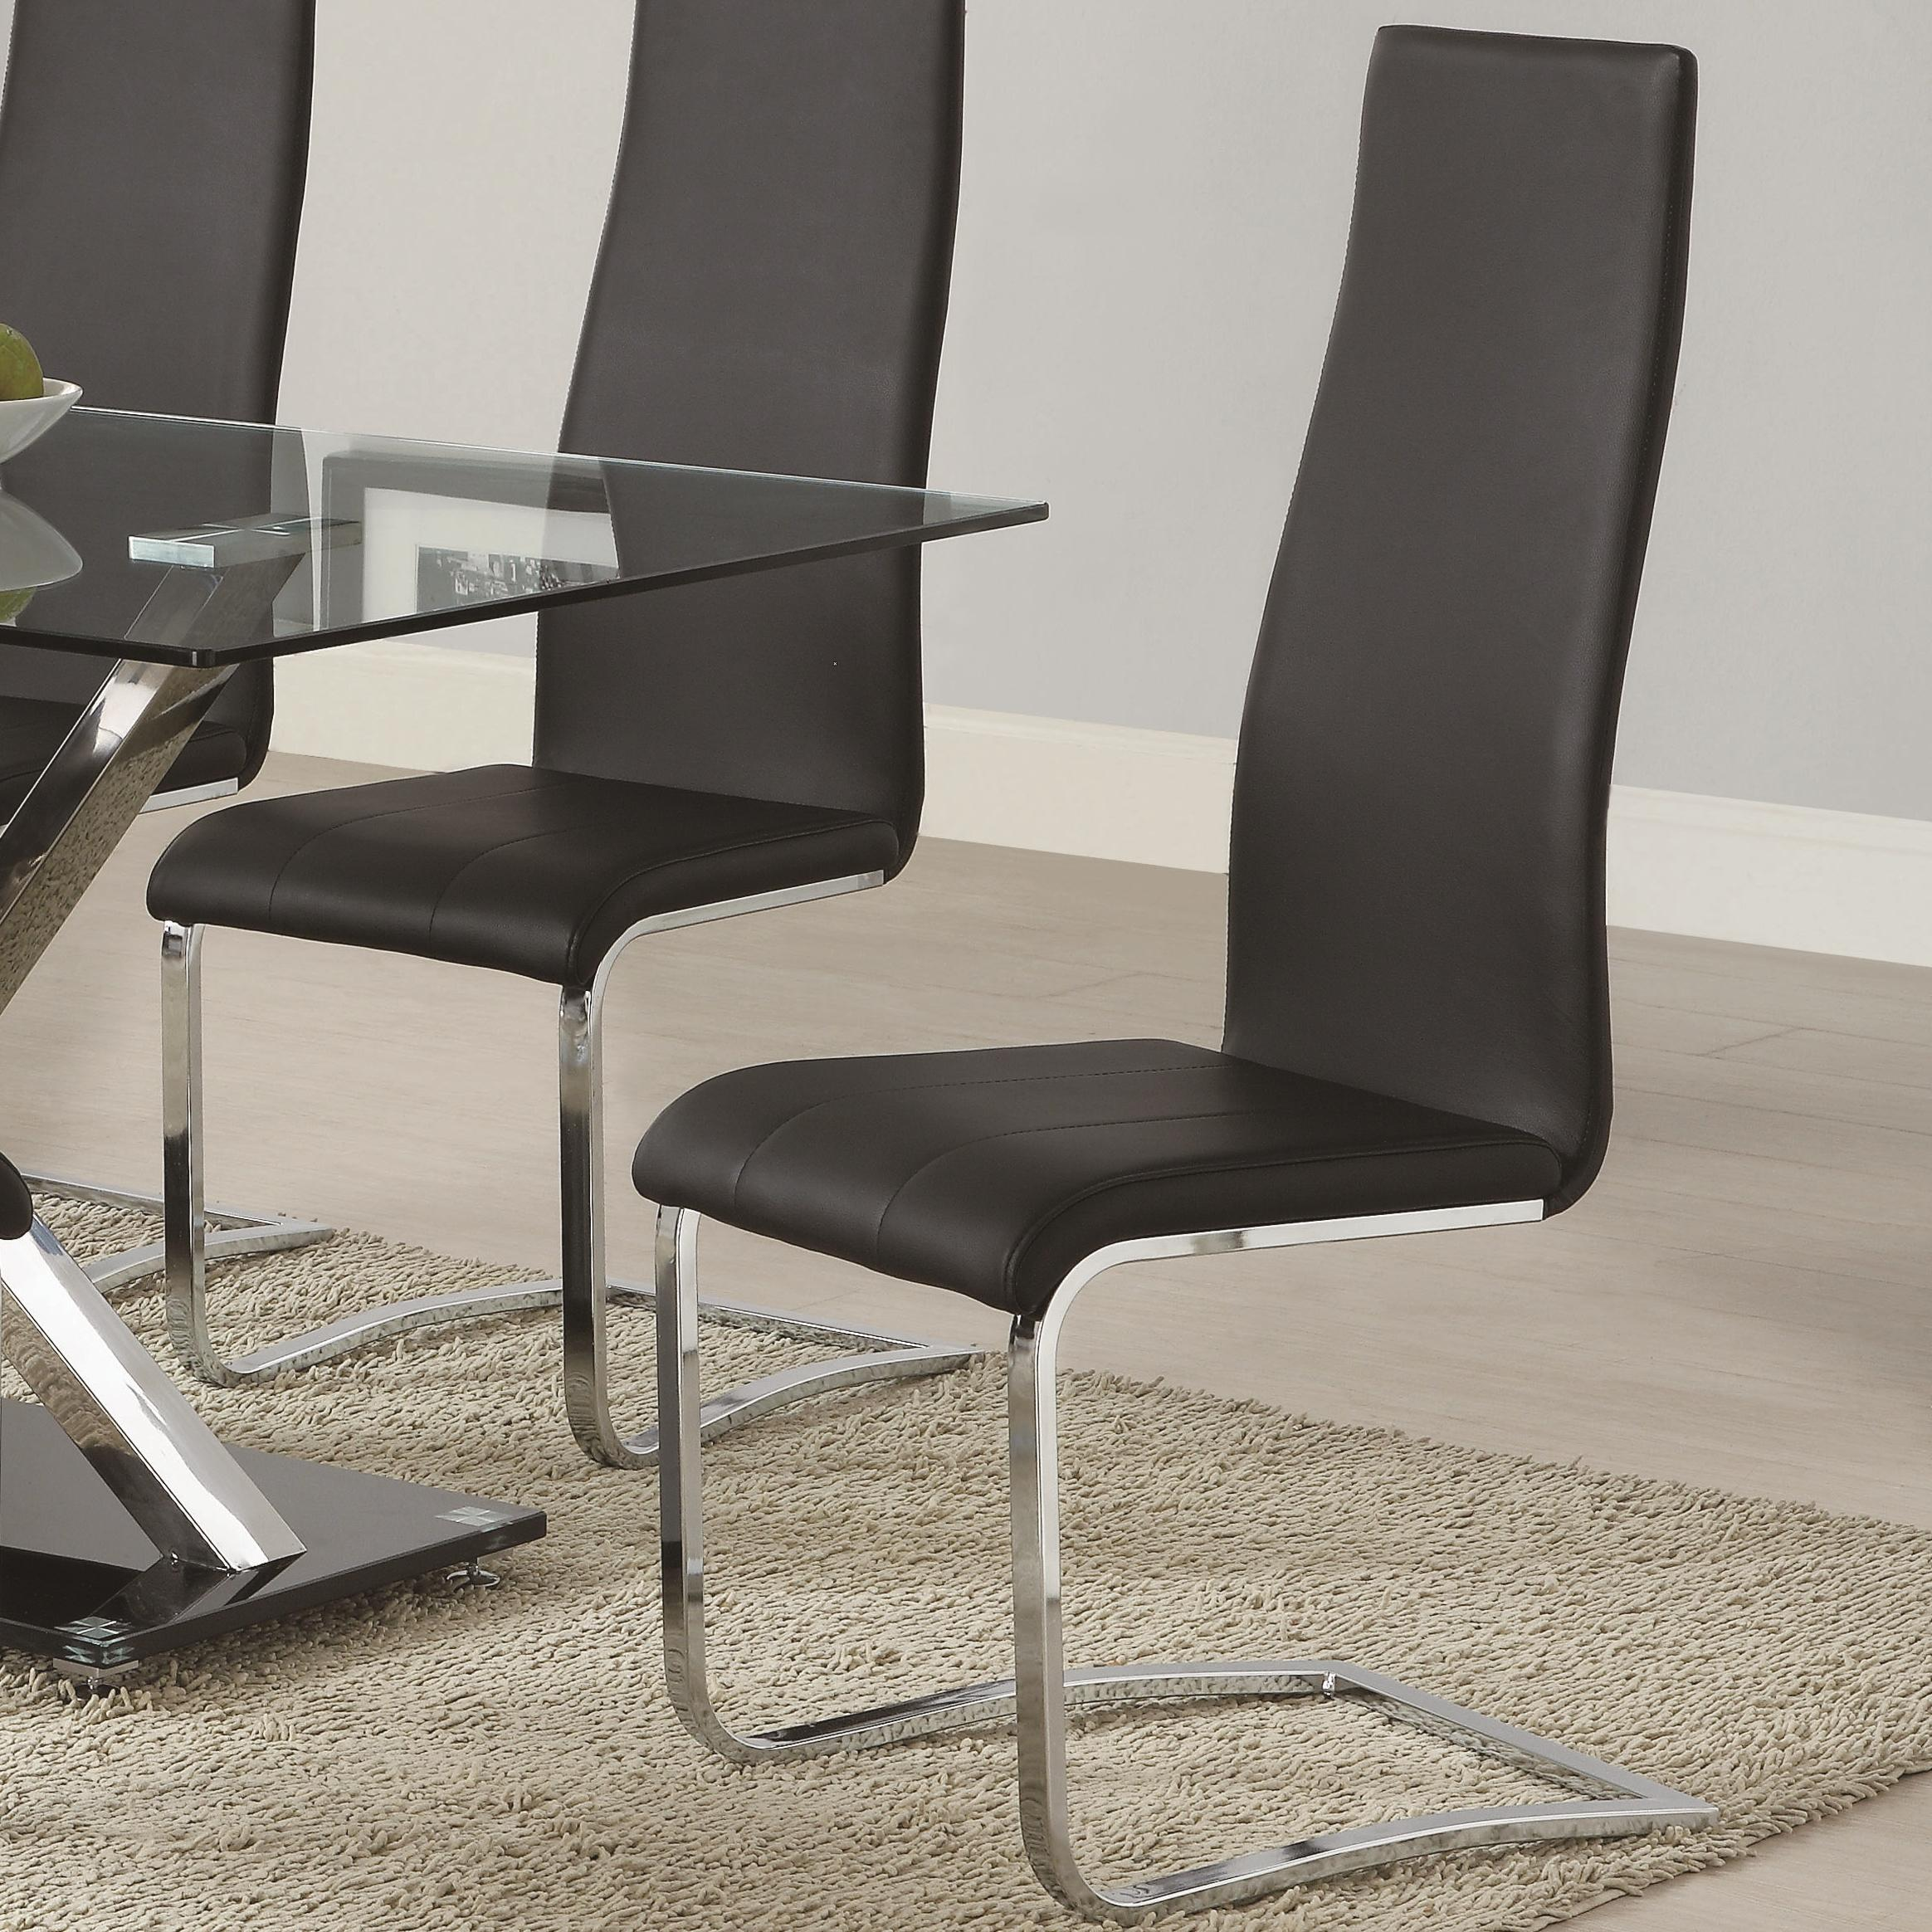 Coaster Modern Dining Black Faux Leather Dining Chair With Chrome Legs Standard Furniture Dining Side Chairs